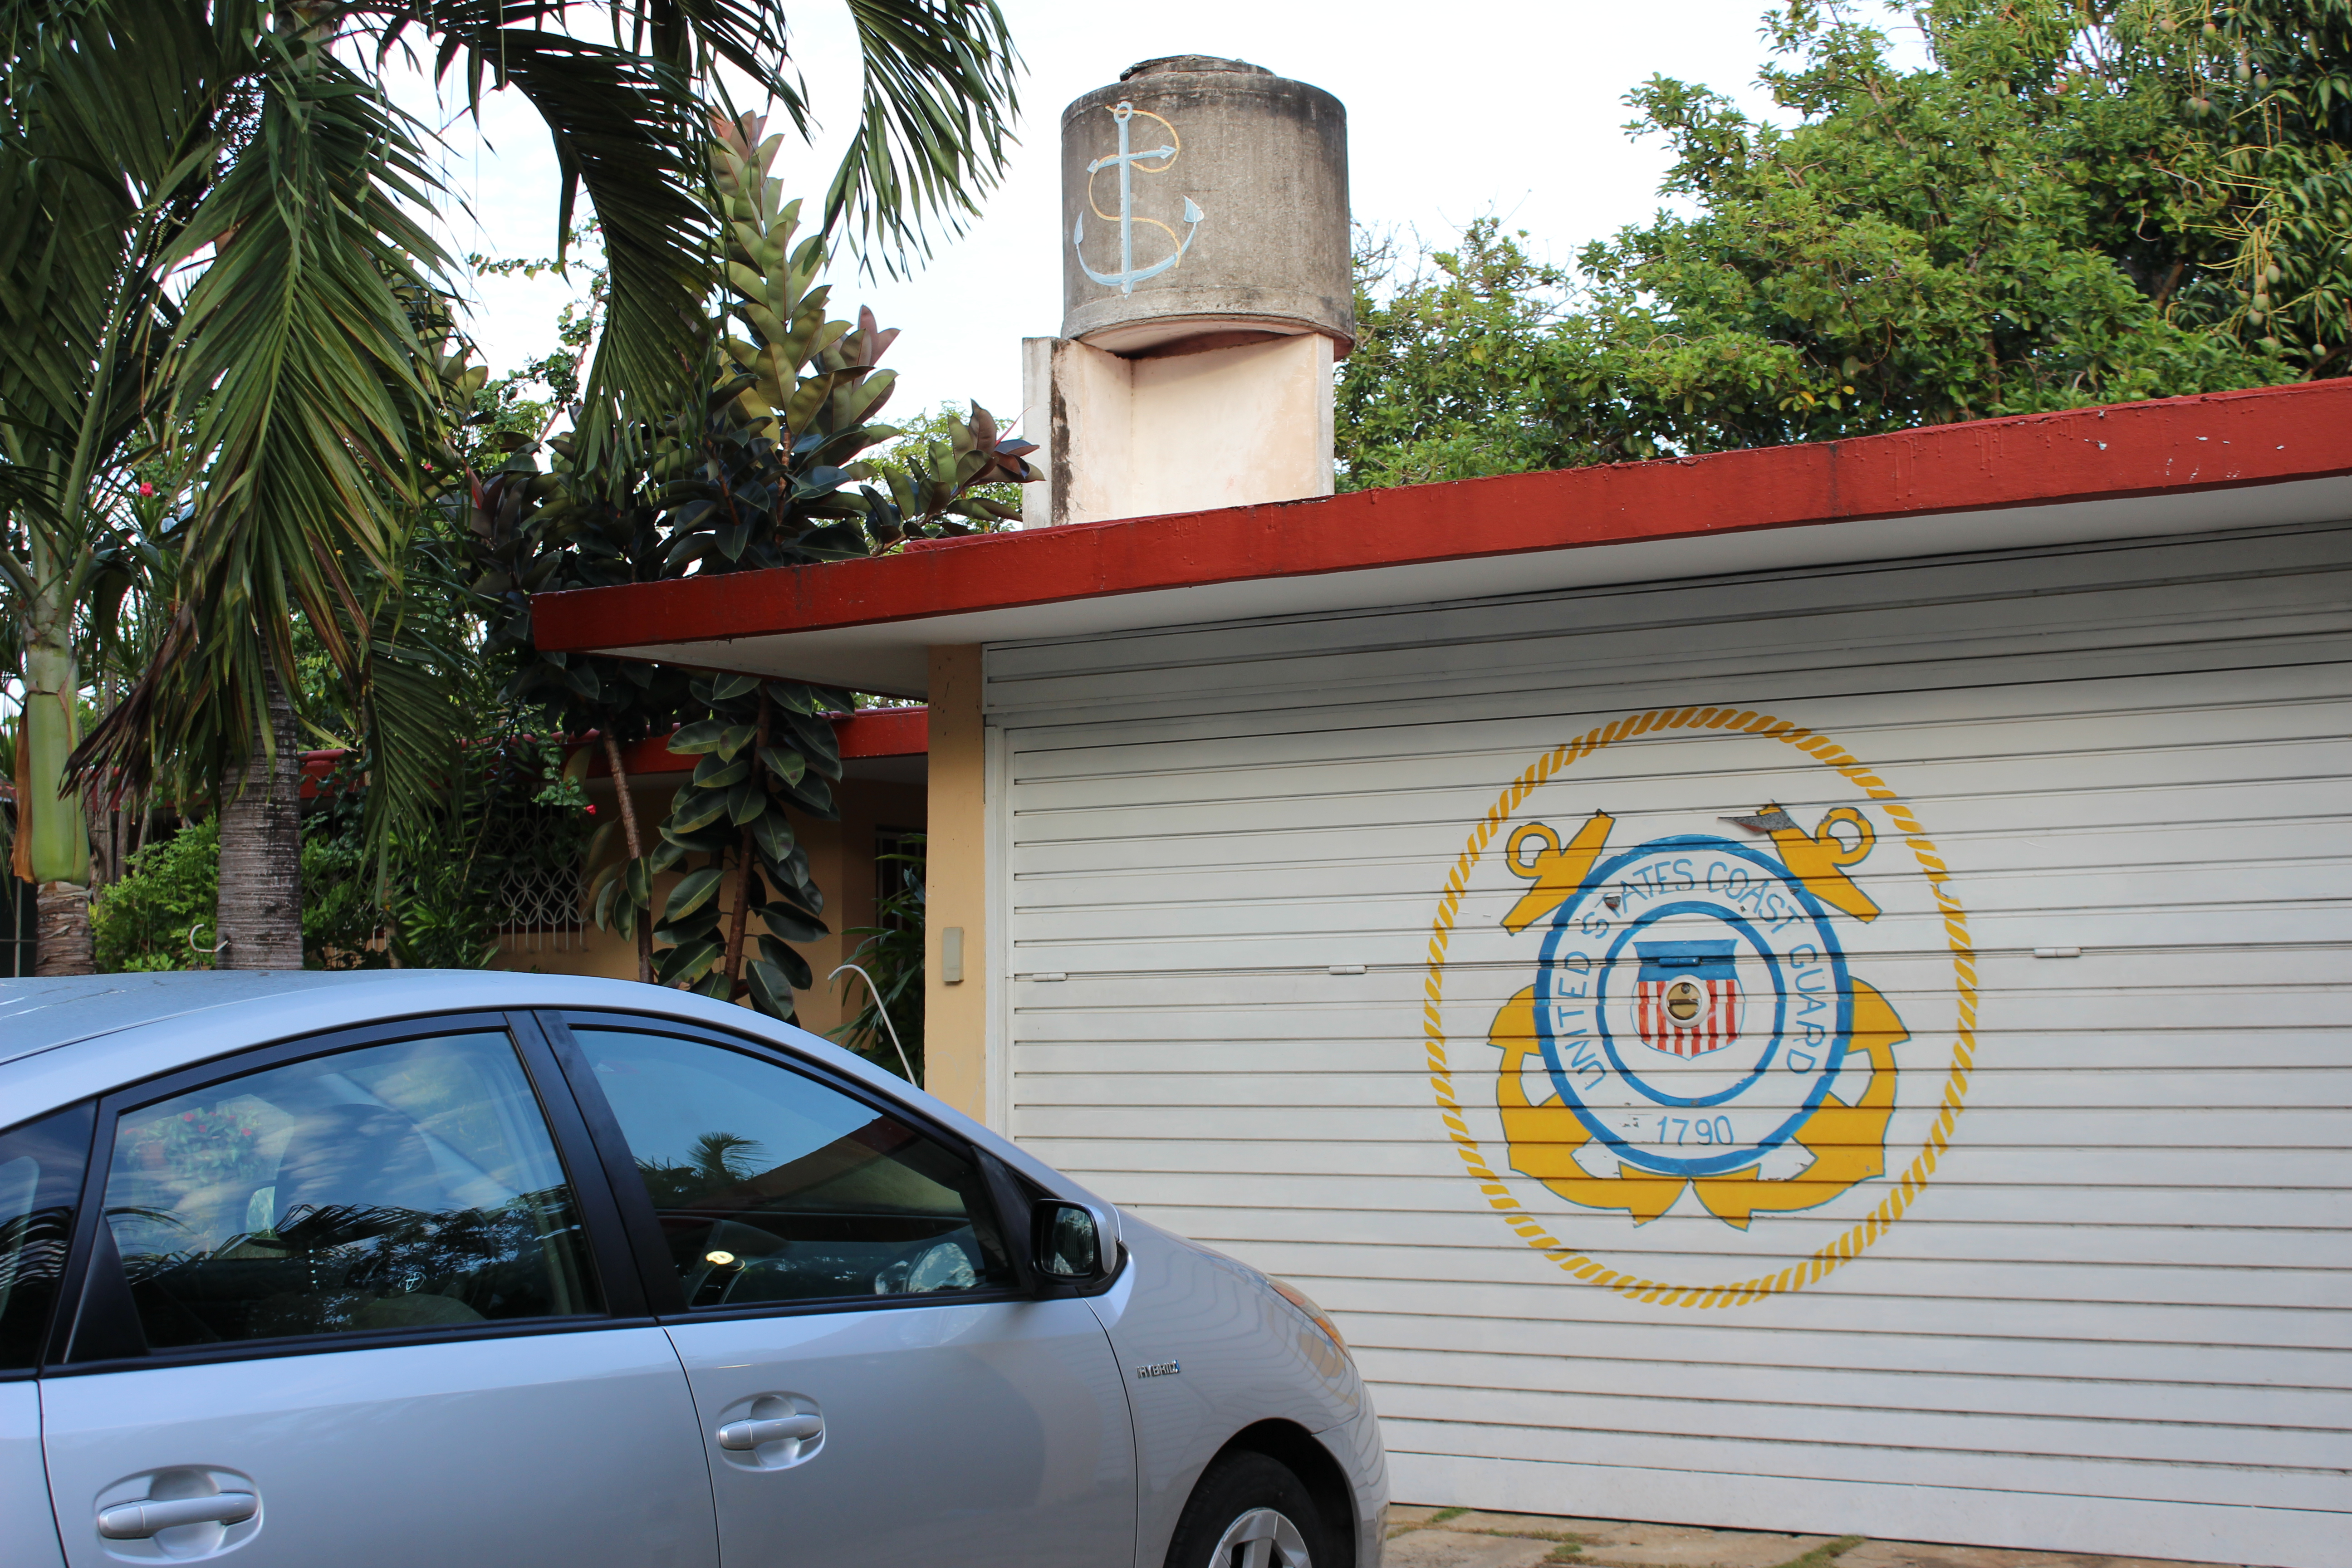 The official residence of the U.S. Coast Guard liaison for Cuba. Photo credit: Iris Gonzalez